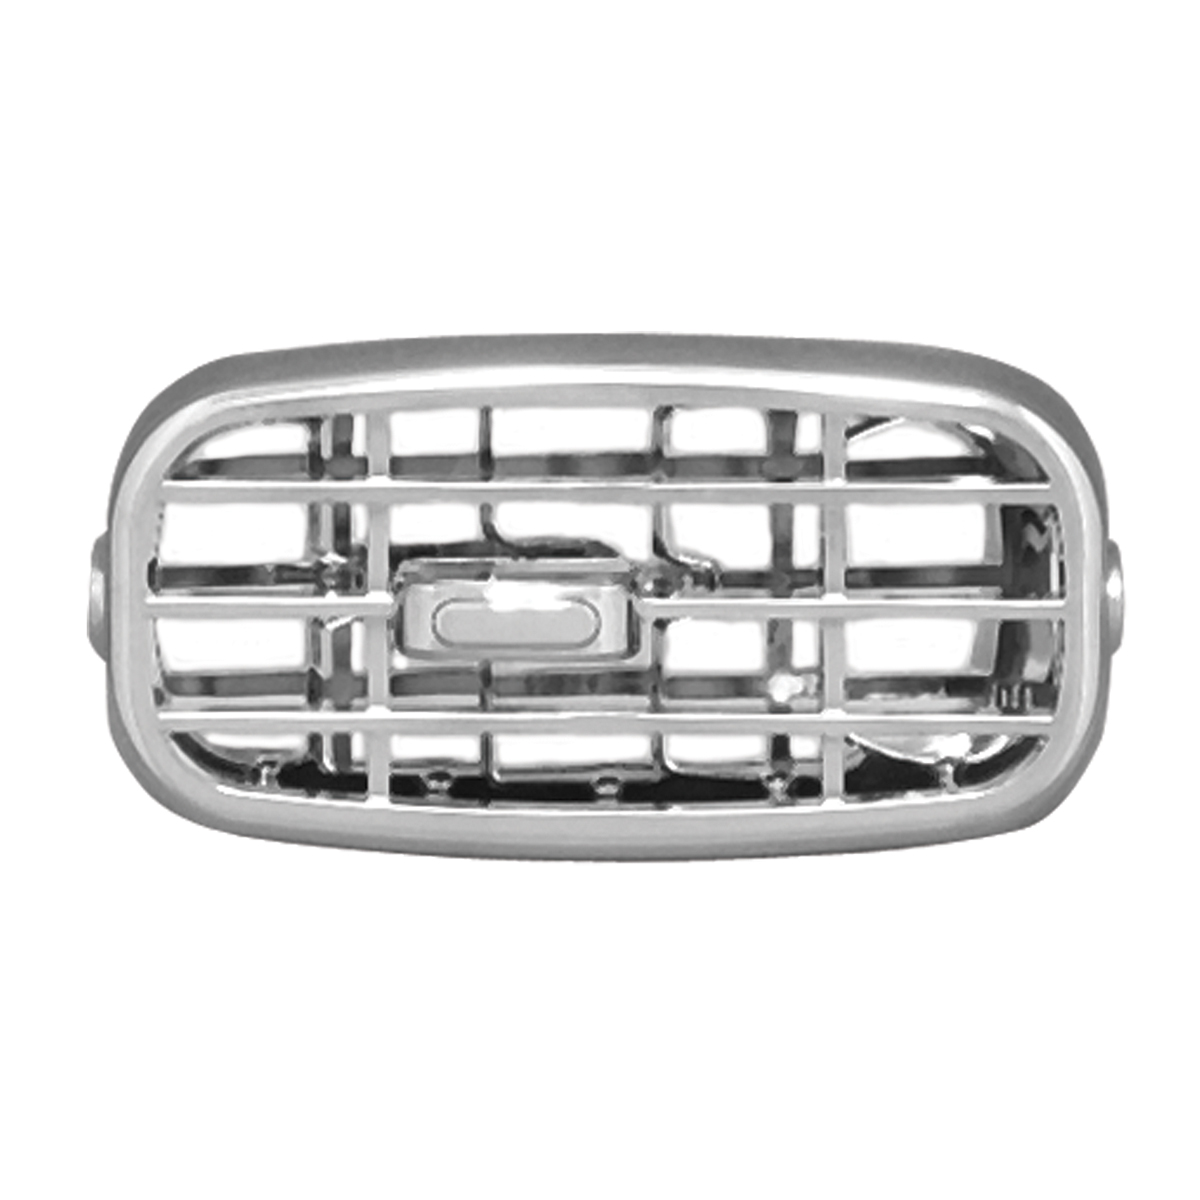 68344 Chrome Plastic A/C Vent Adjustable Louver for Peterbilt 2005+